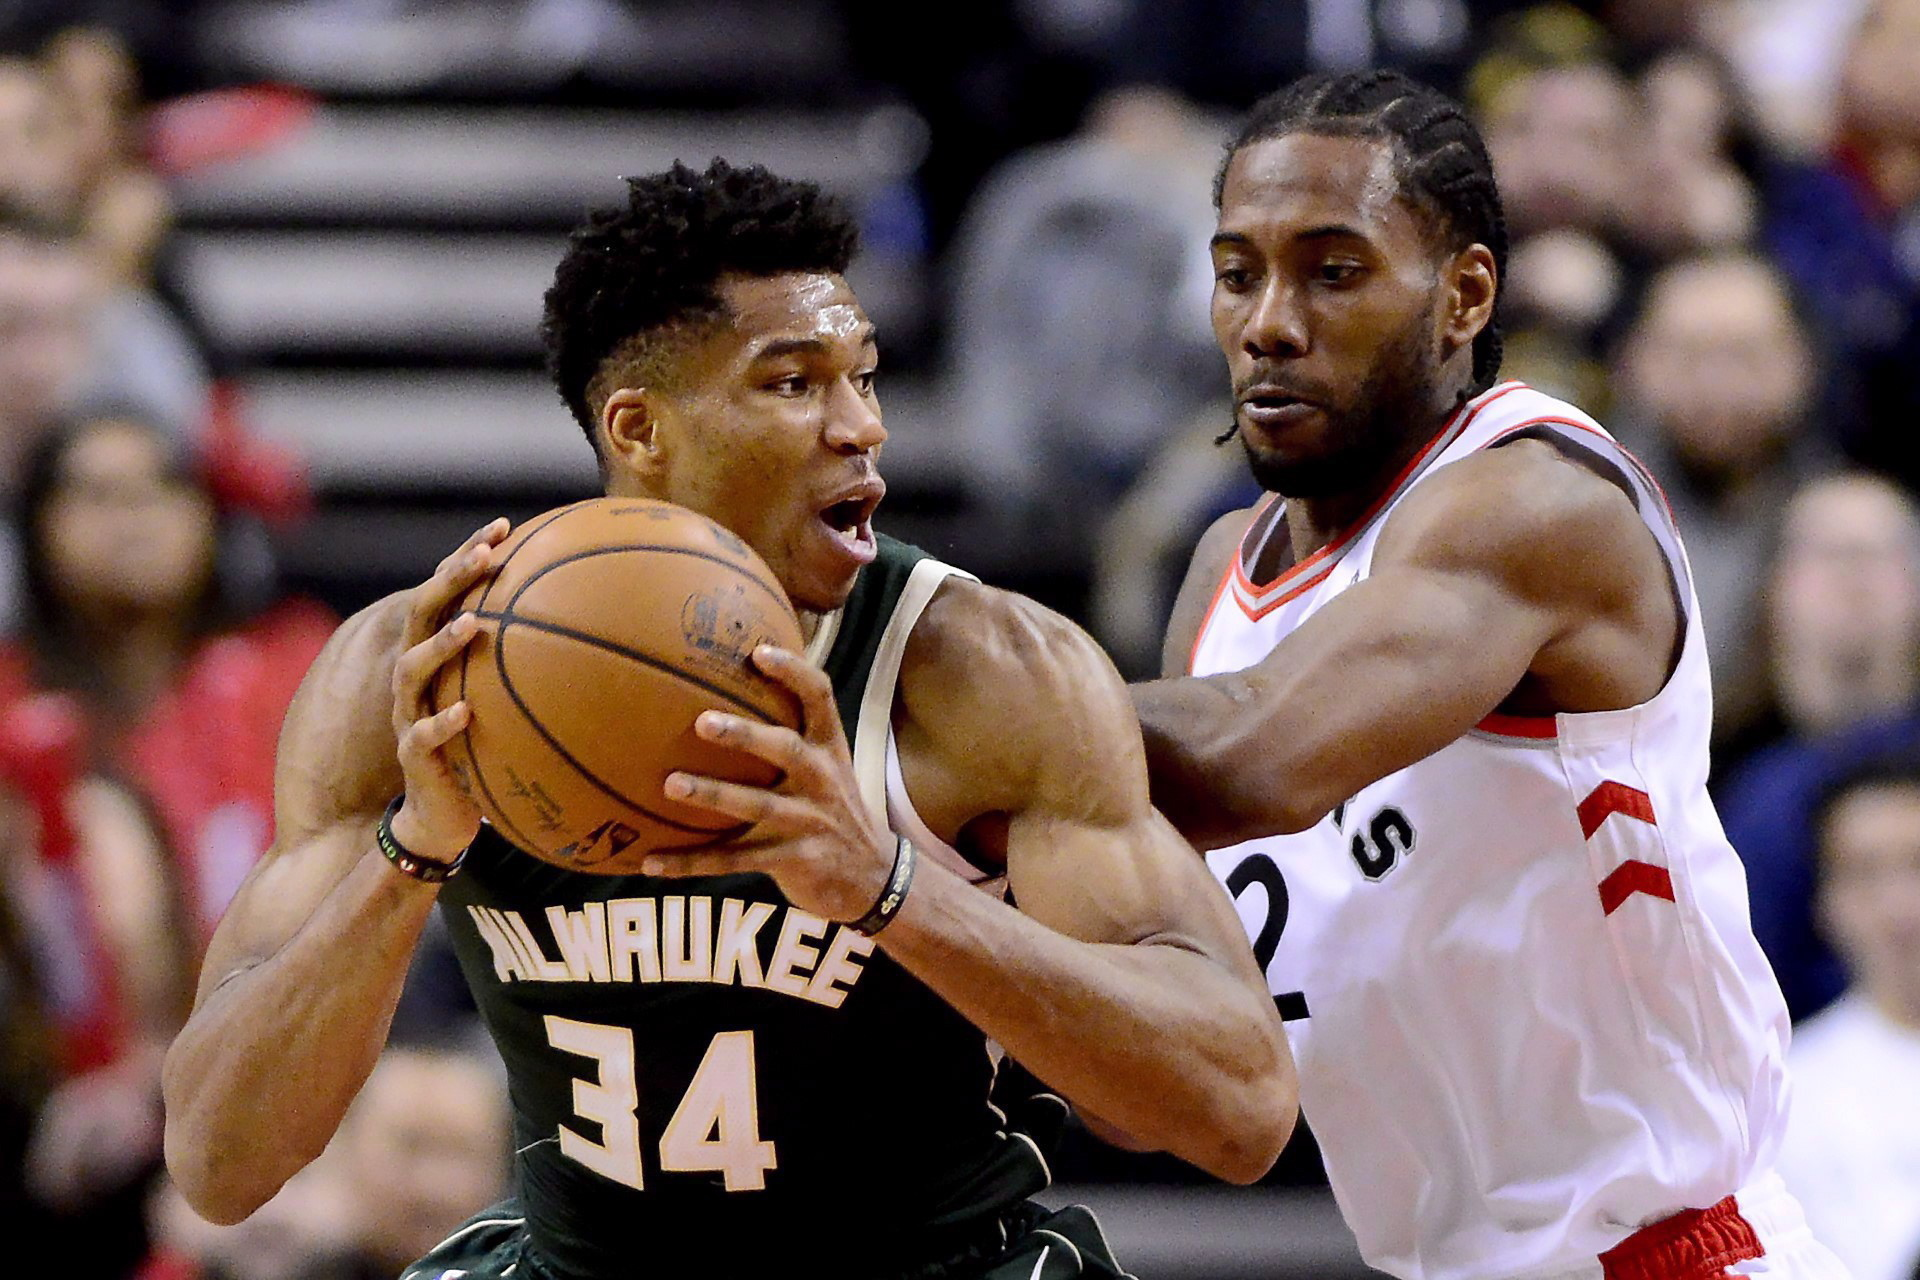 aa574ffb429 Toronto Raptors can fill void in quiet playoffs for Canadian sports teams